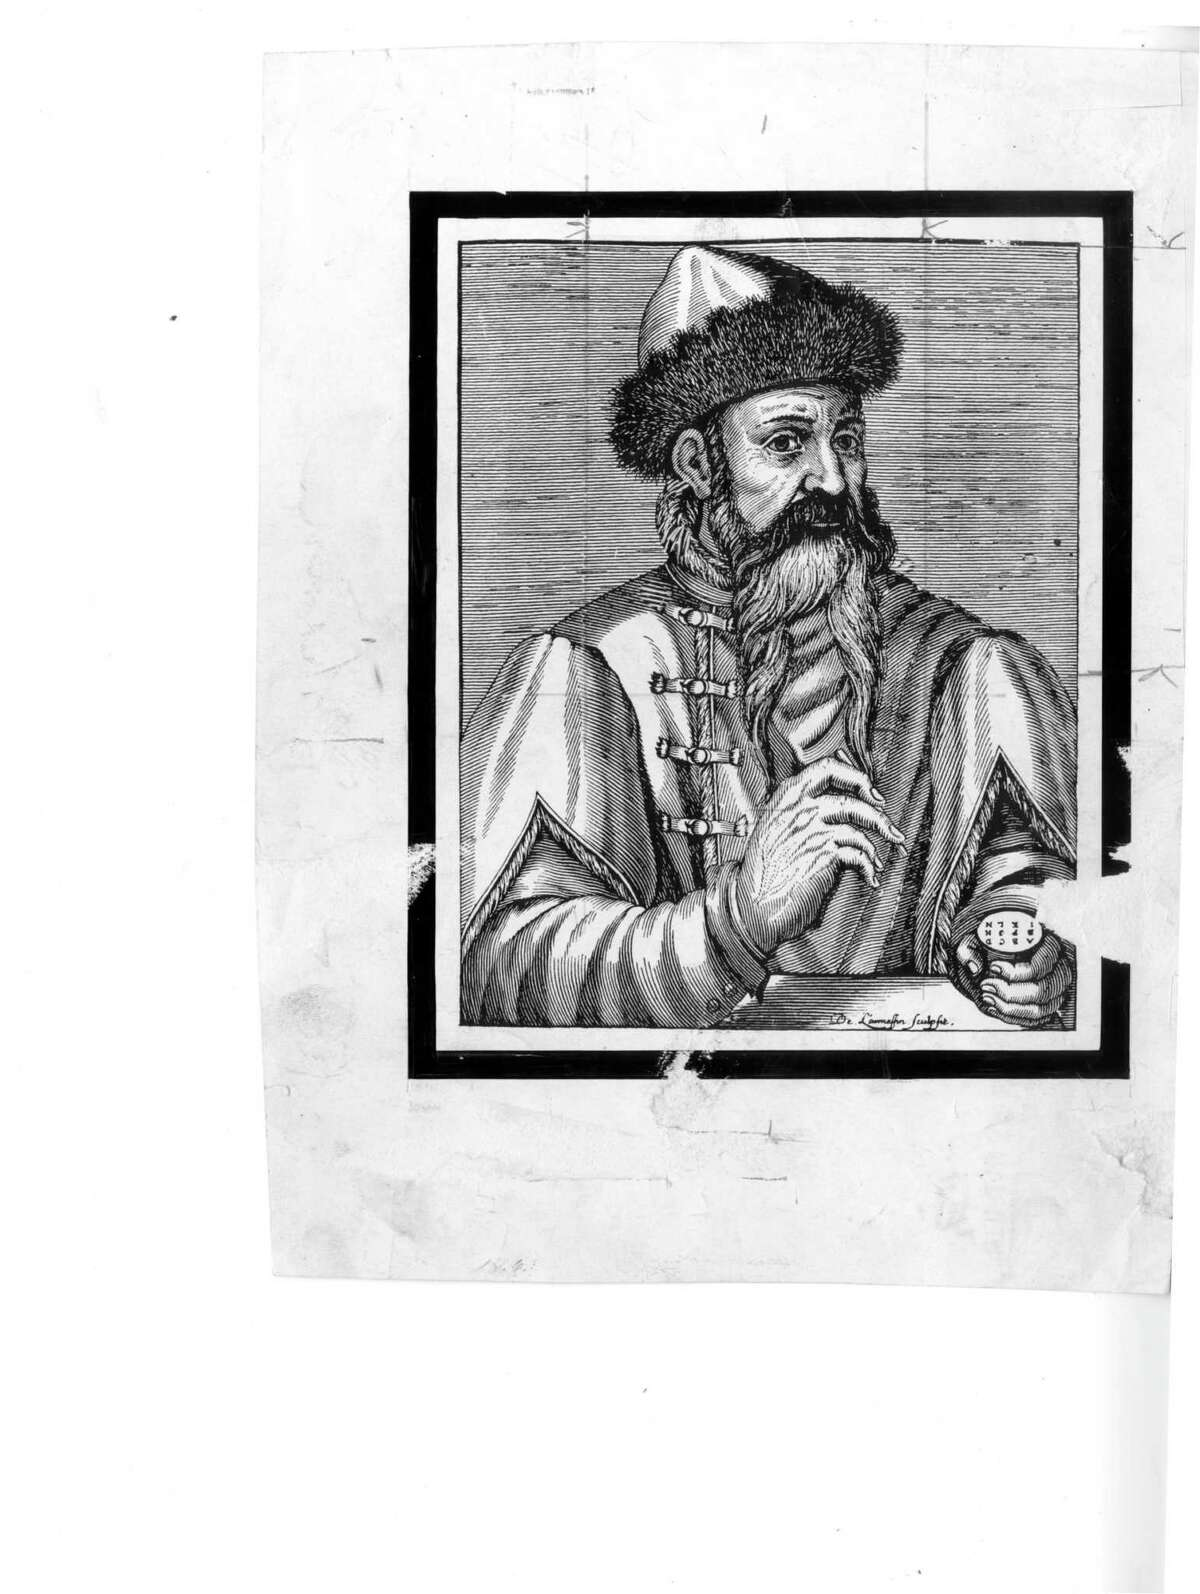 Disruptive innovator: Johann Gutenberg invented the printing press in the 1400s.